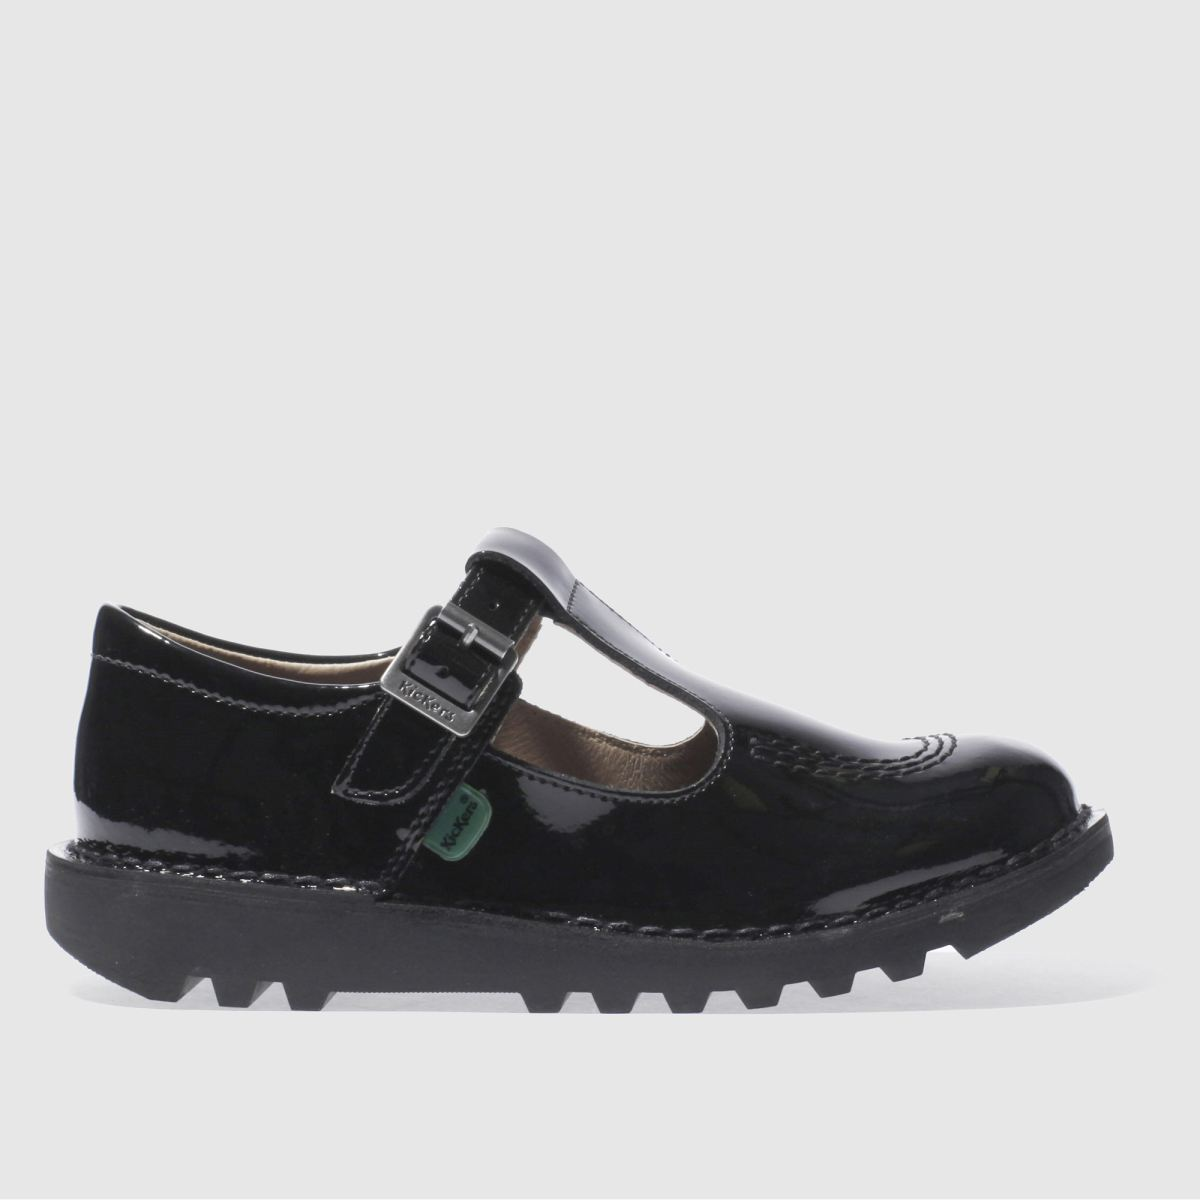 kickers black kick t-bar Girls Junior Shoes